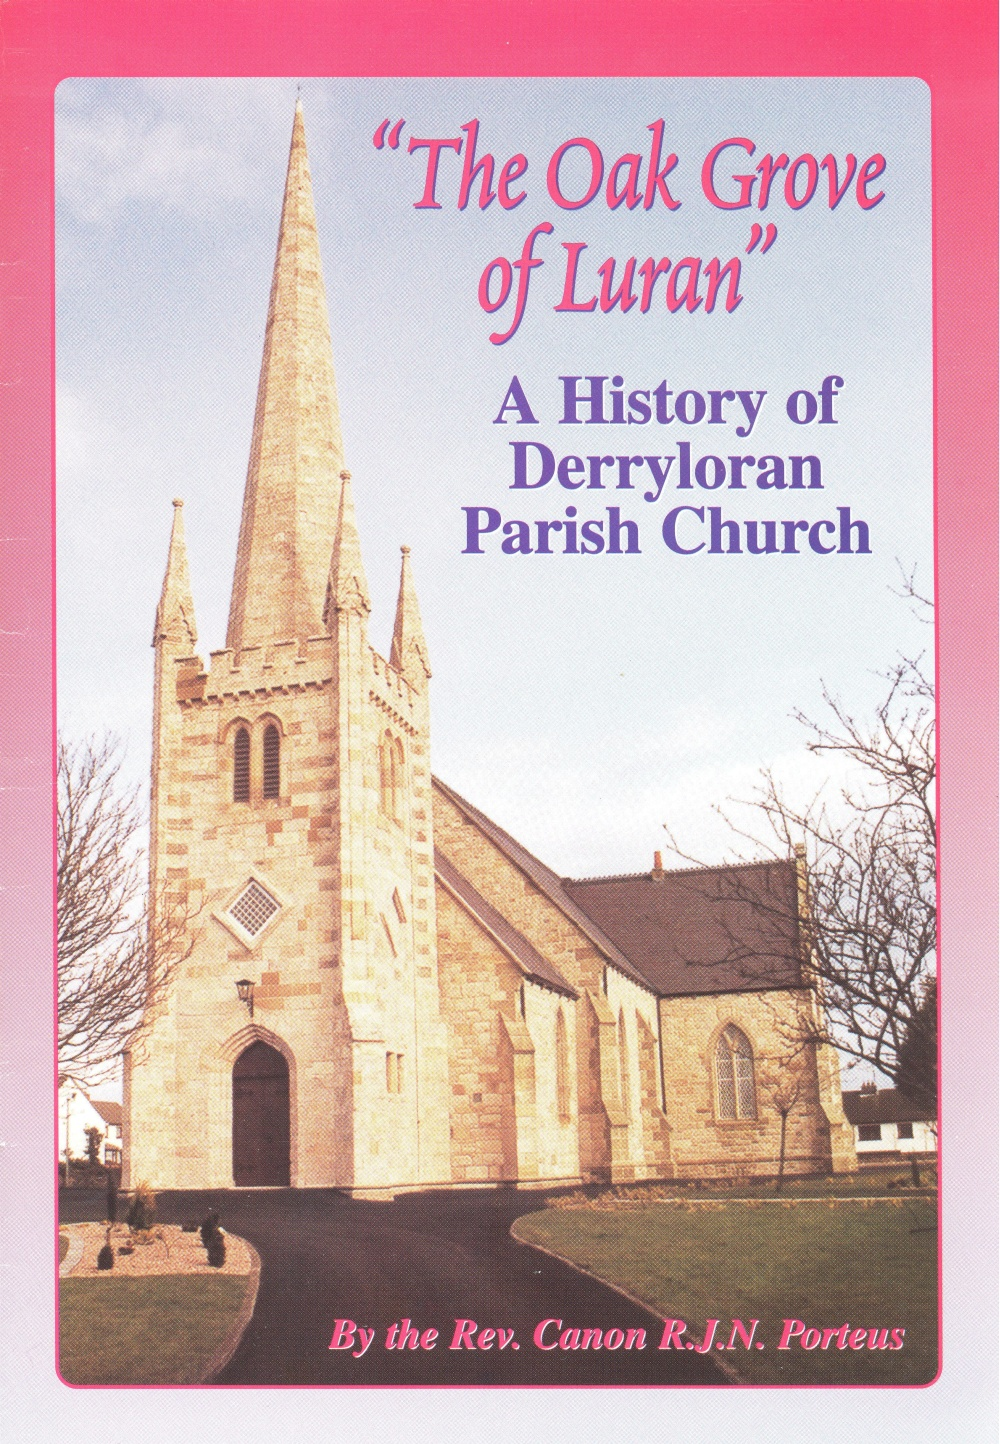 Front cover of R.J.N. Porteous, The Oak Grove of Luran. A History of Derryloran Parish Church (Derryloran, 2000)